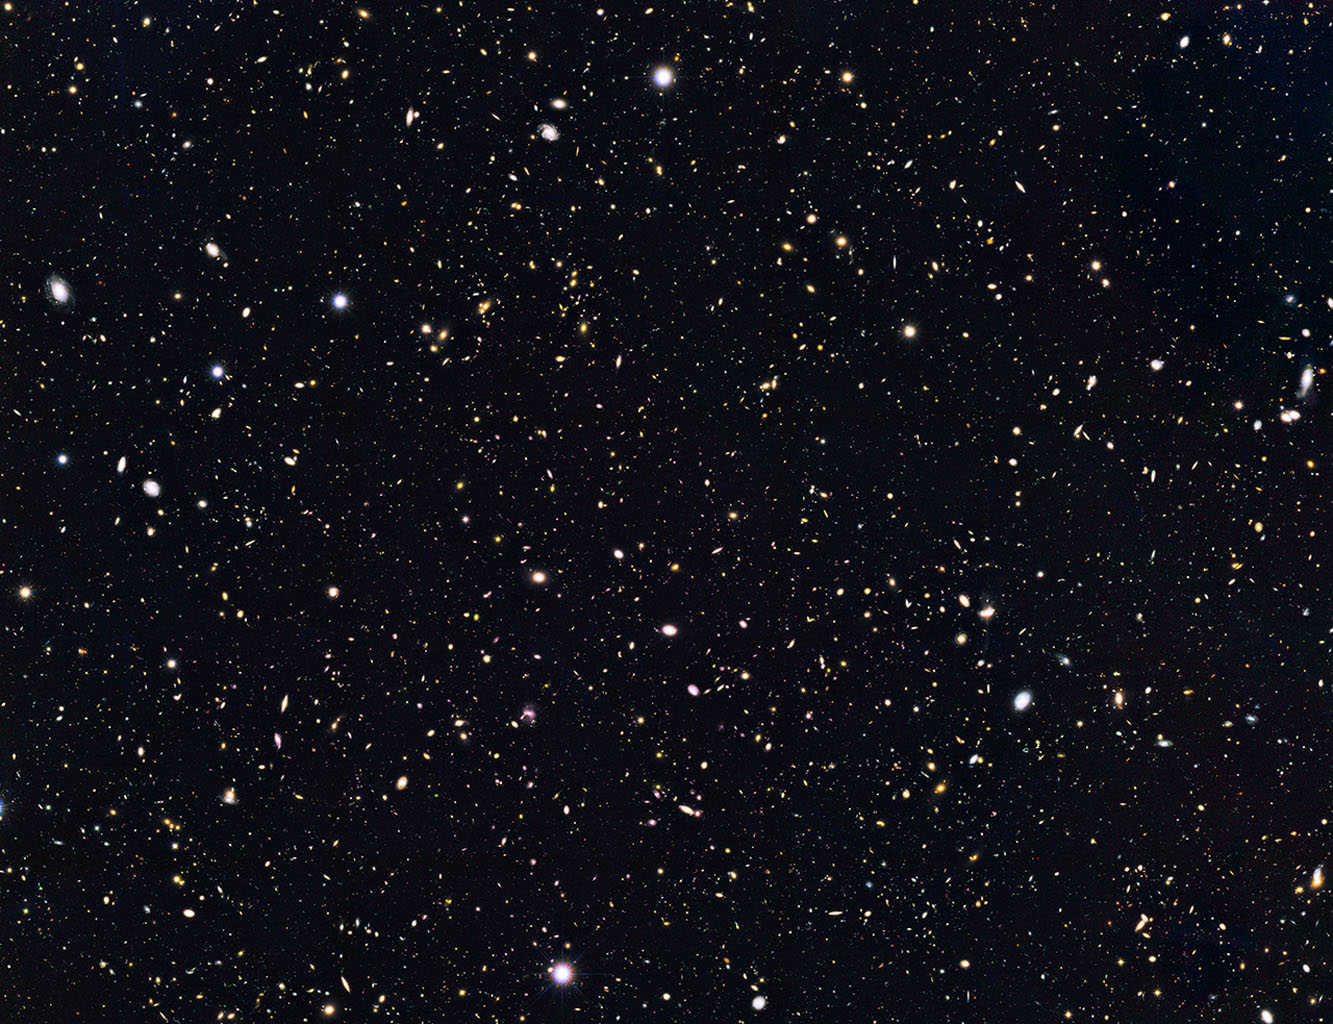 Space Images | Distant Galaxies in Goods North